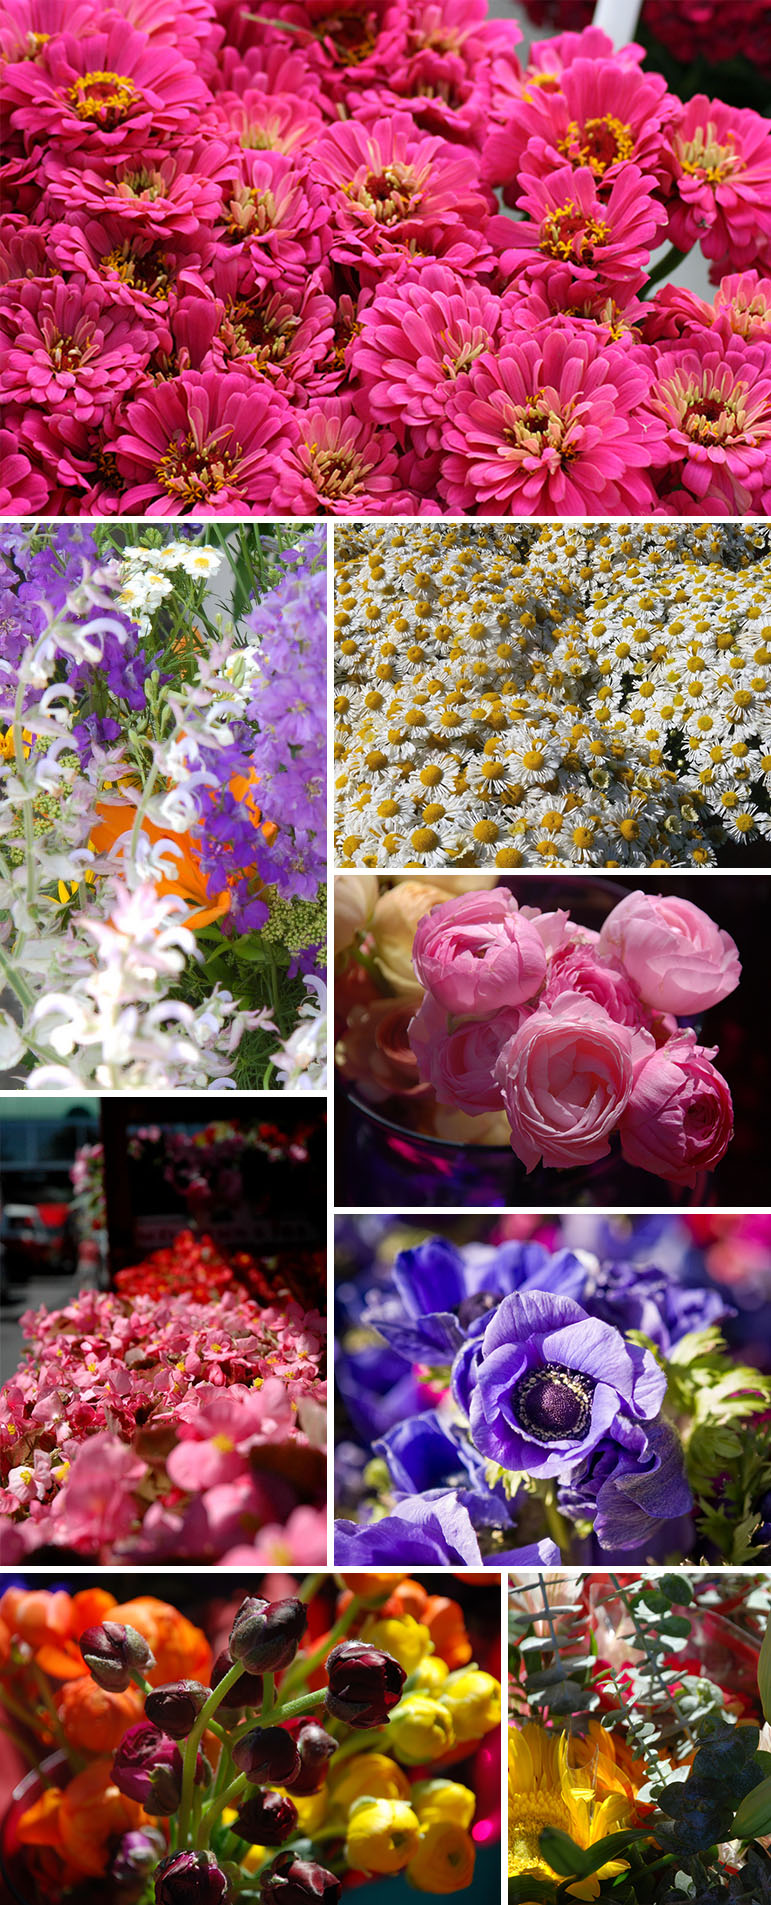 Farmersmarket_flowers